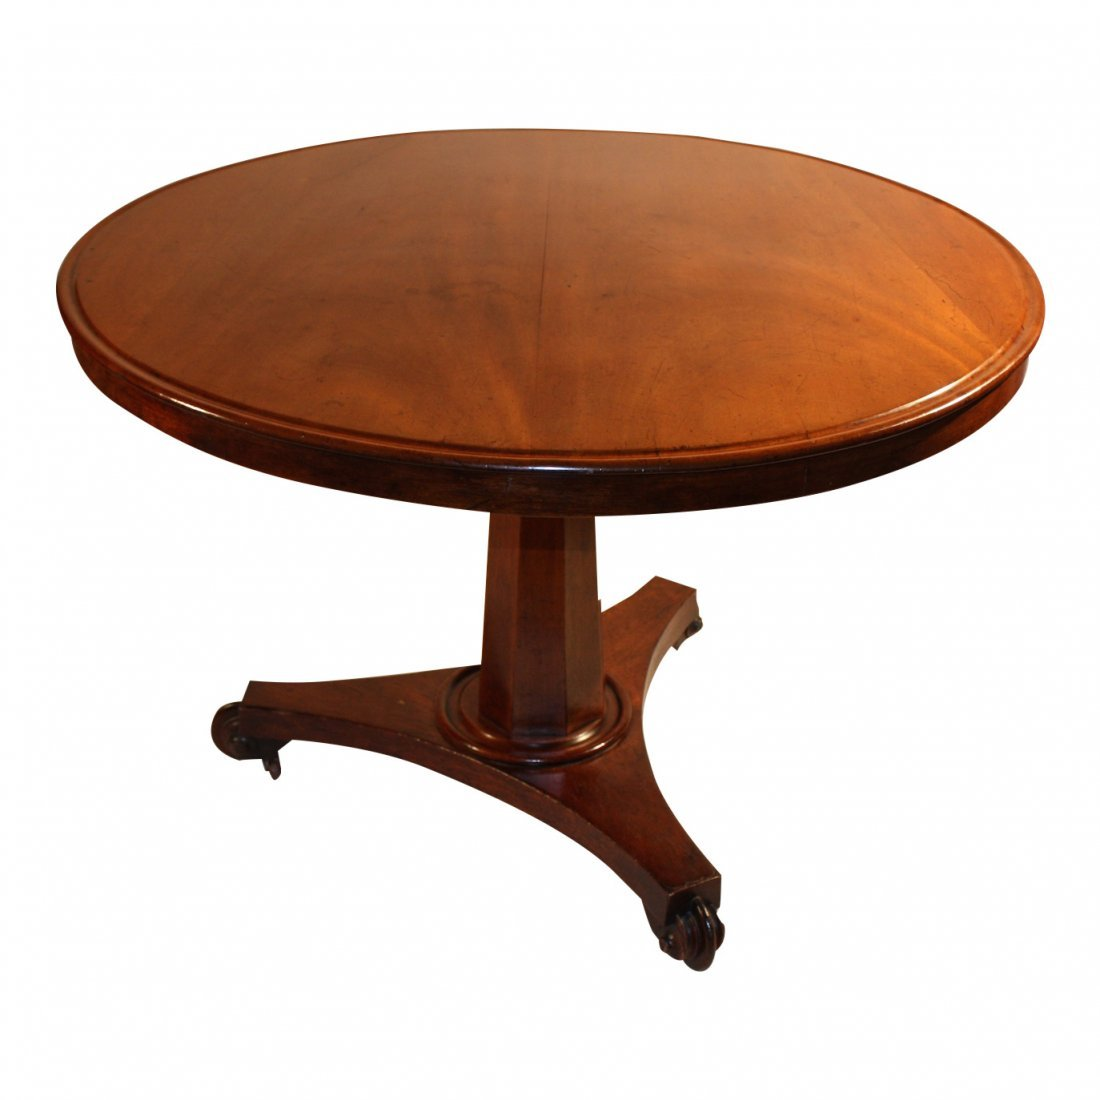 Tilt-top Center Table, 19th Century